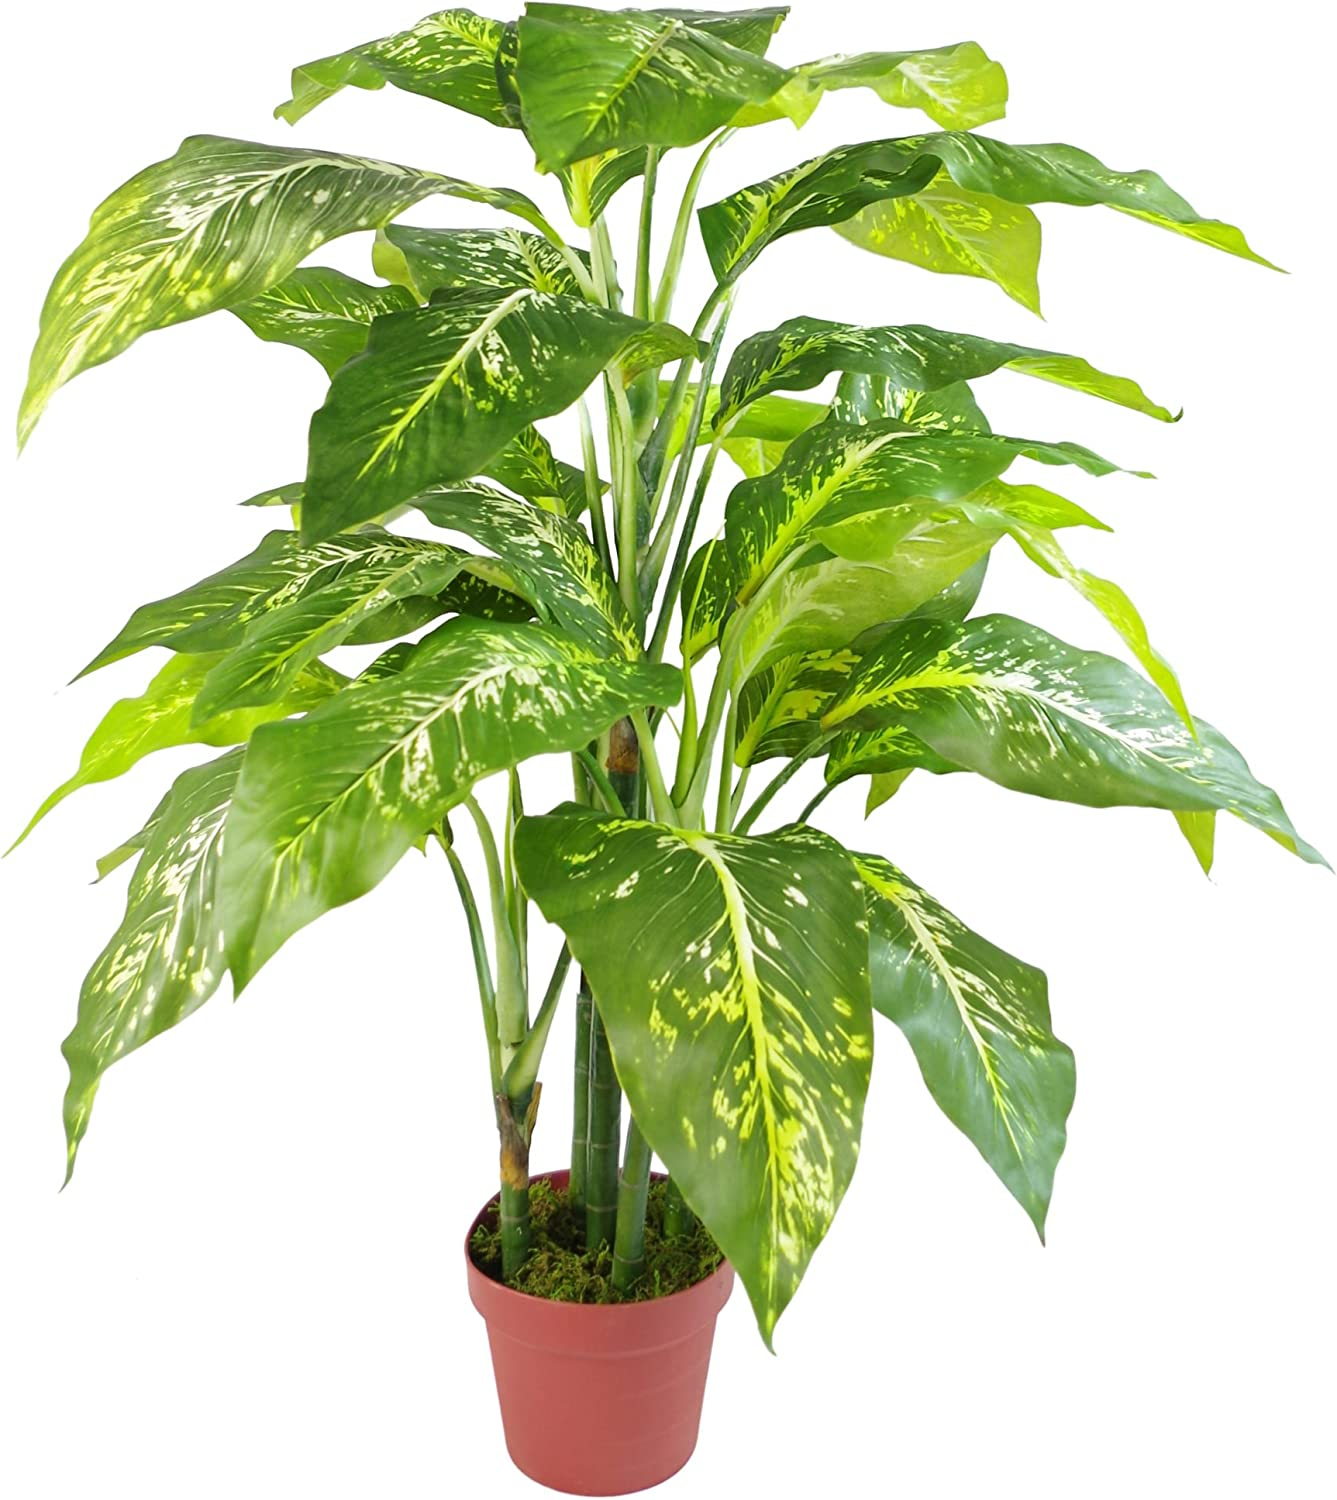 Leaf 100cm Large Fox's Aglaonema (Spotted Evergreen) Tree Artificial Plant, with Plain Plastic Pot